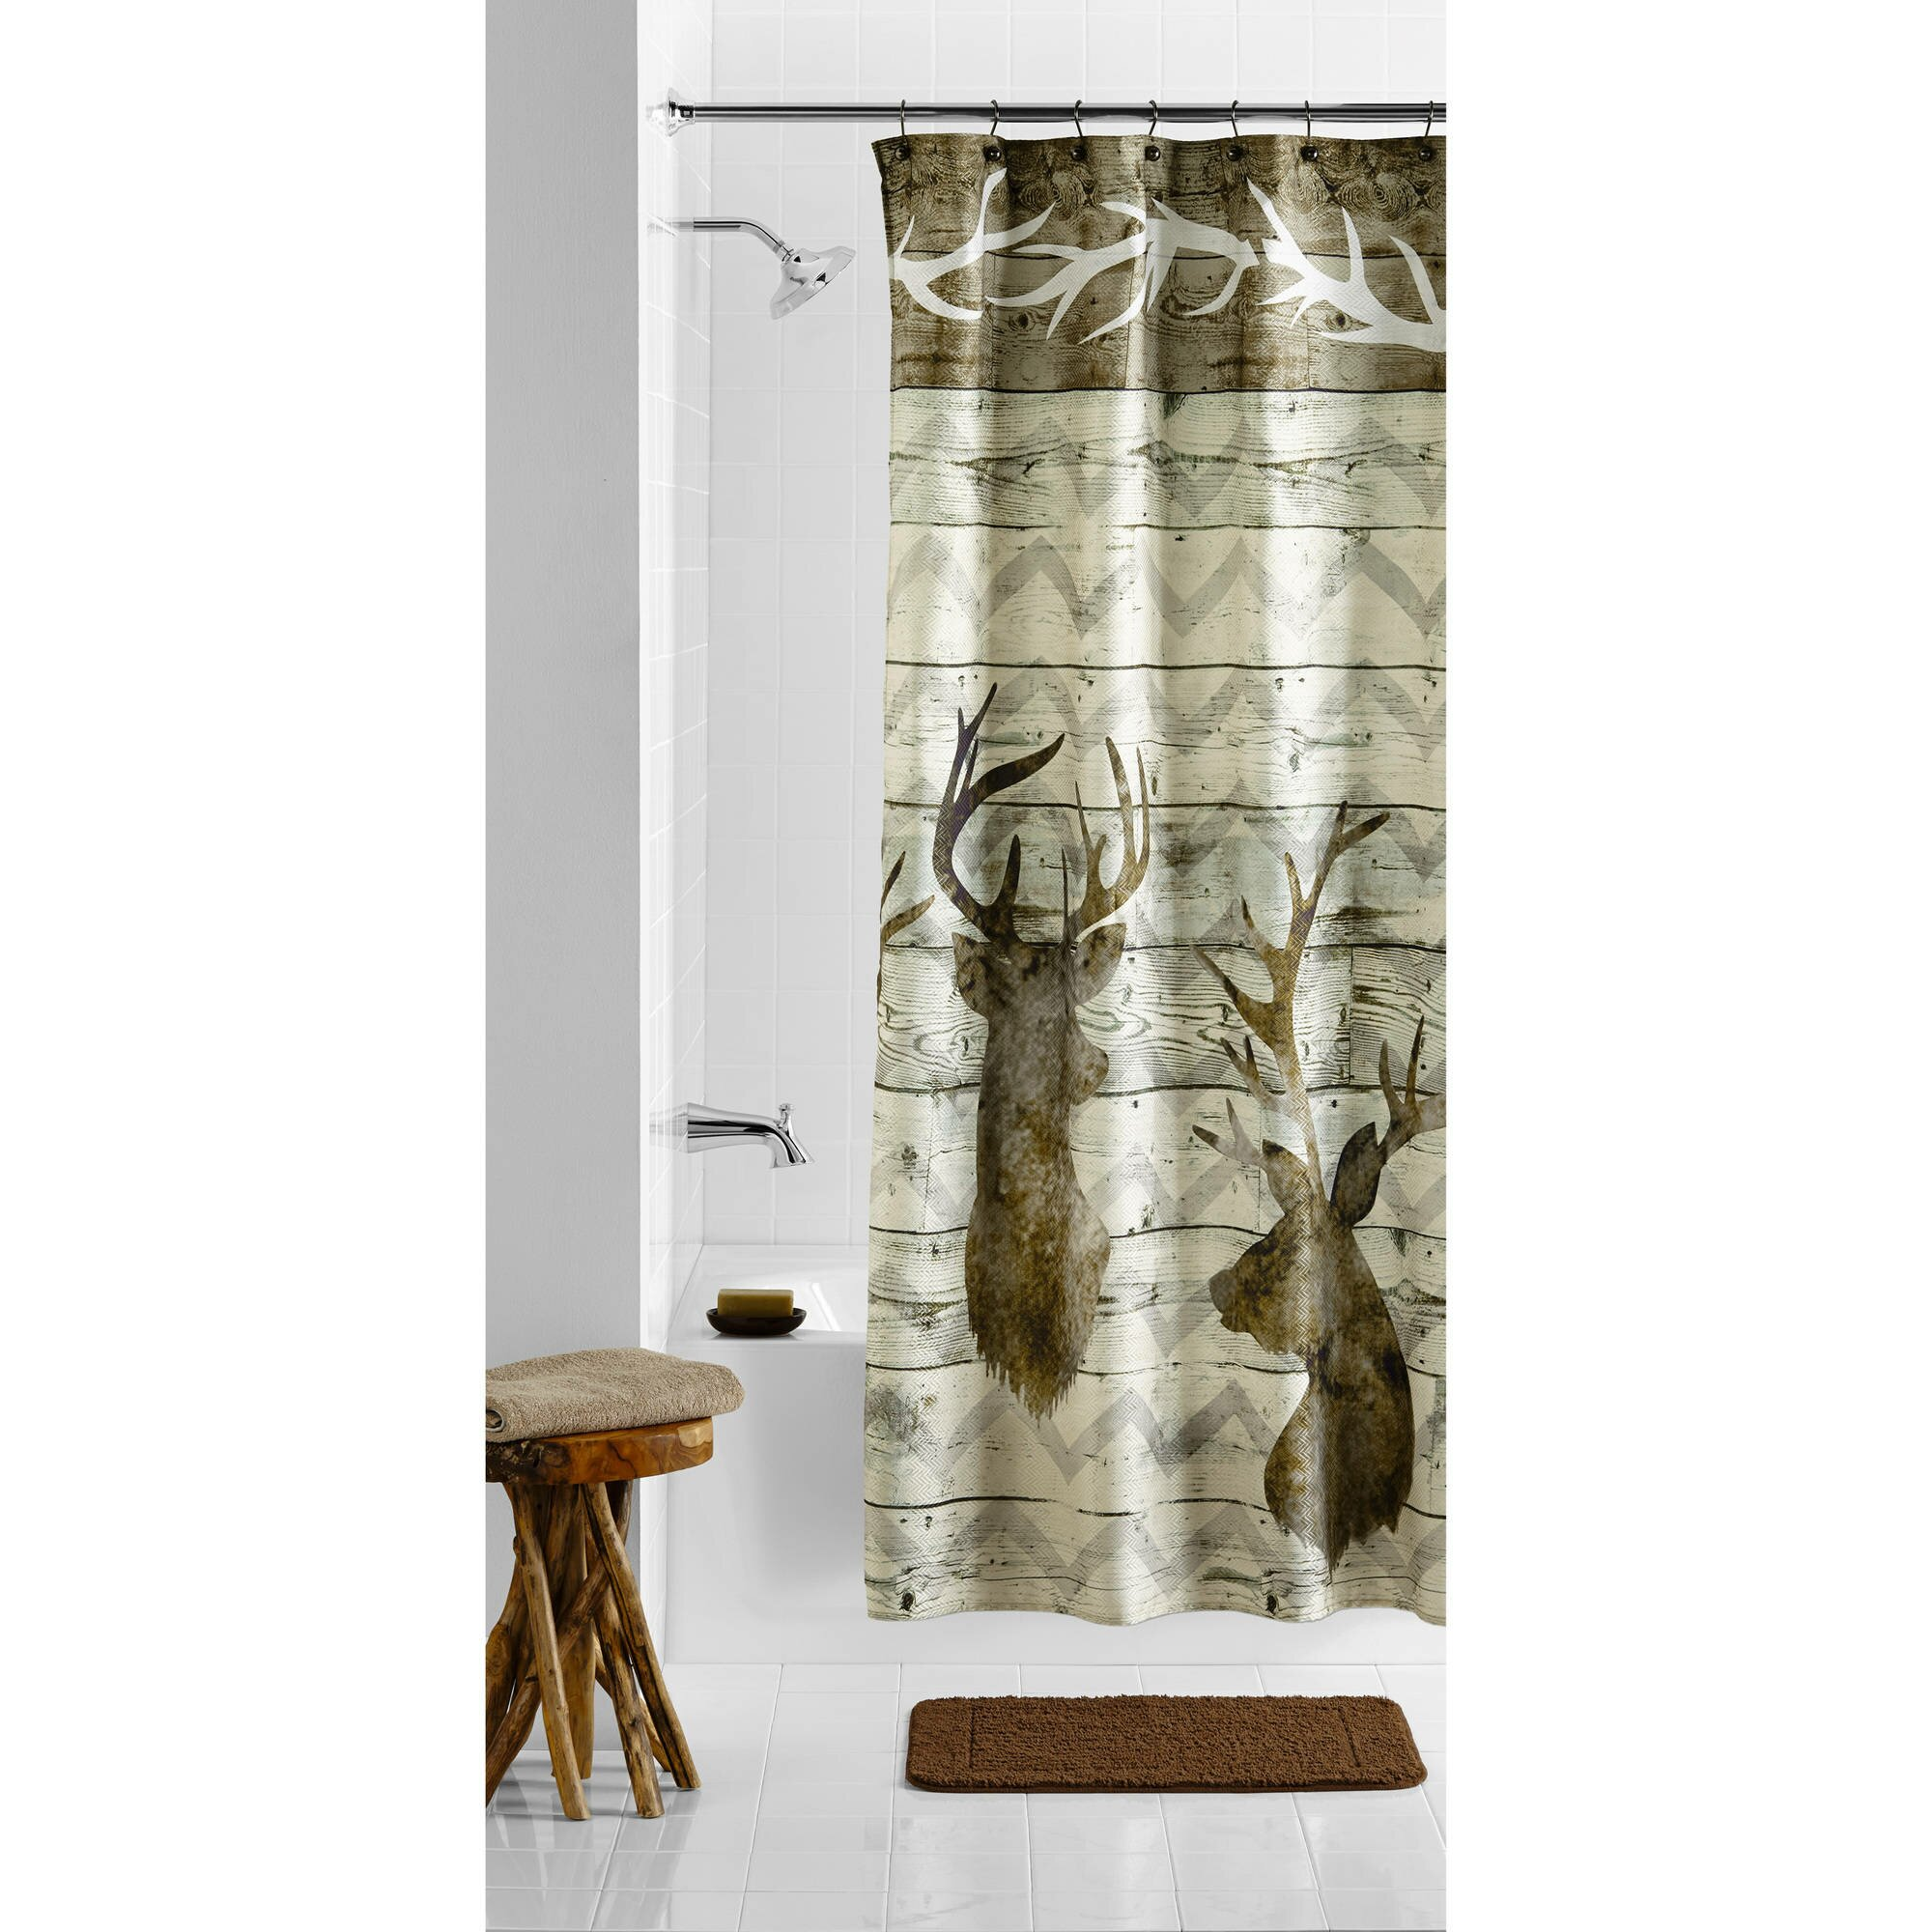 Walmart Shower Curtain for Cute Your Bathroom Decor Ideas: Navy Fabric Shower Curtain | Walmart Tree Shower Curtain | Walmart Shower Curtain